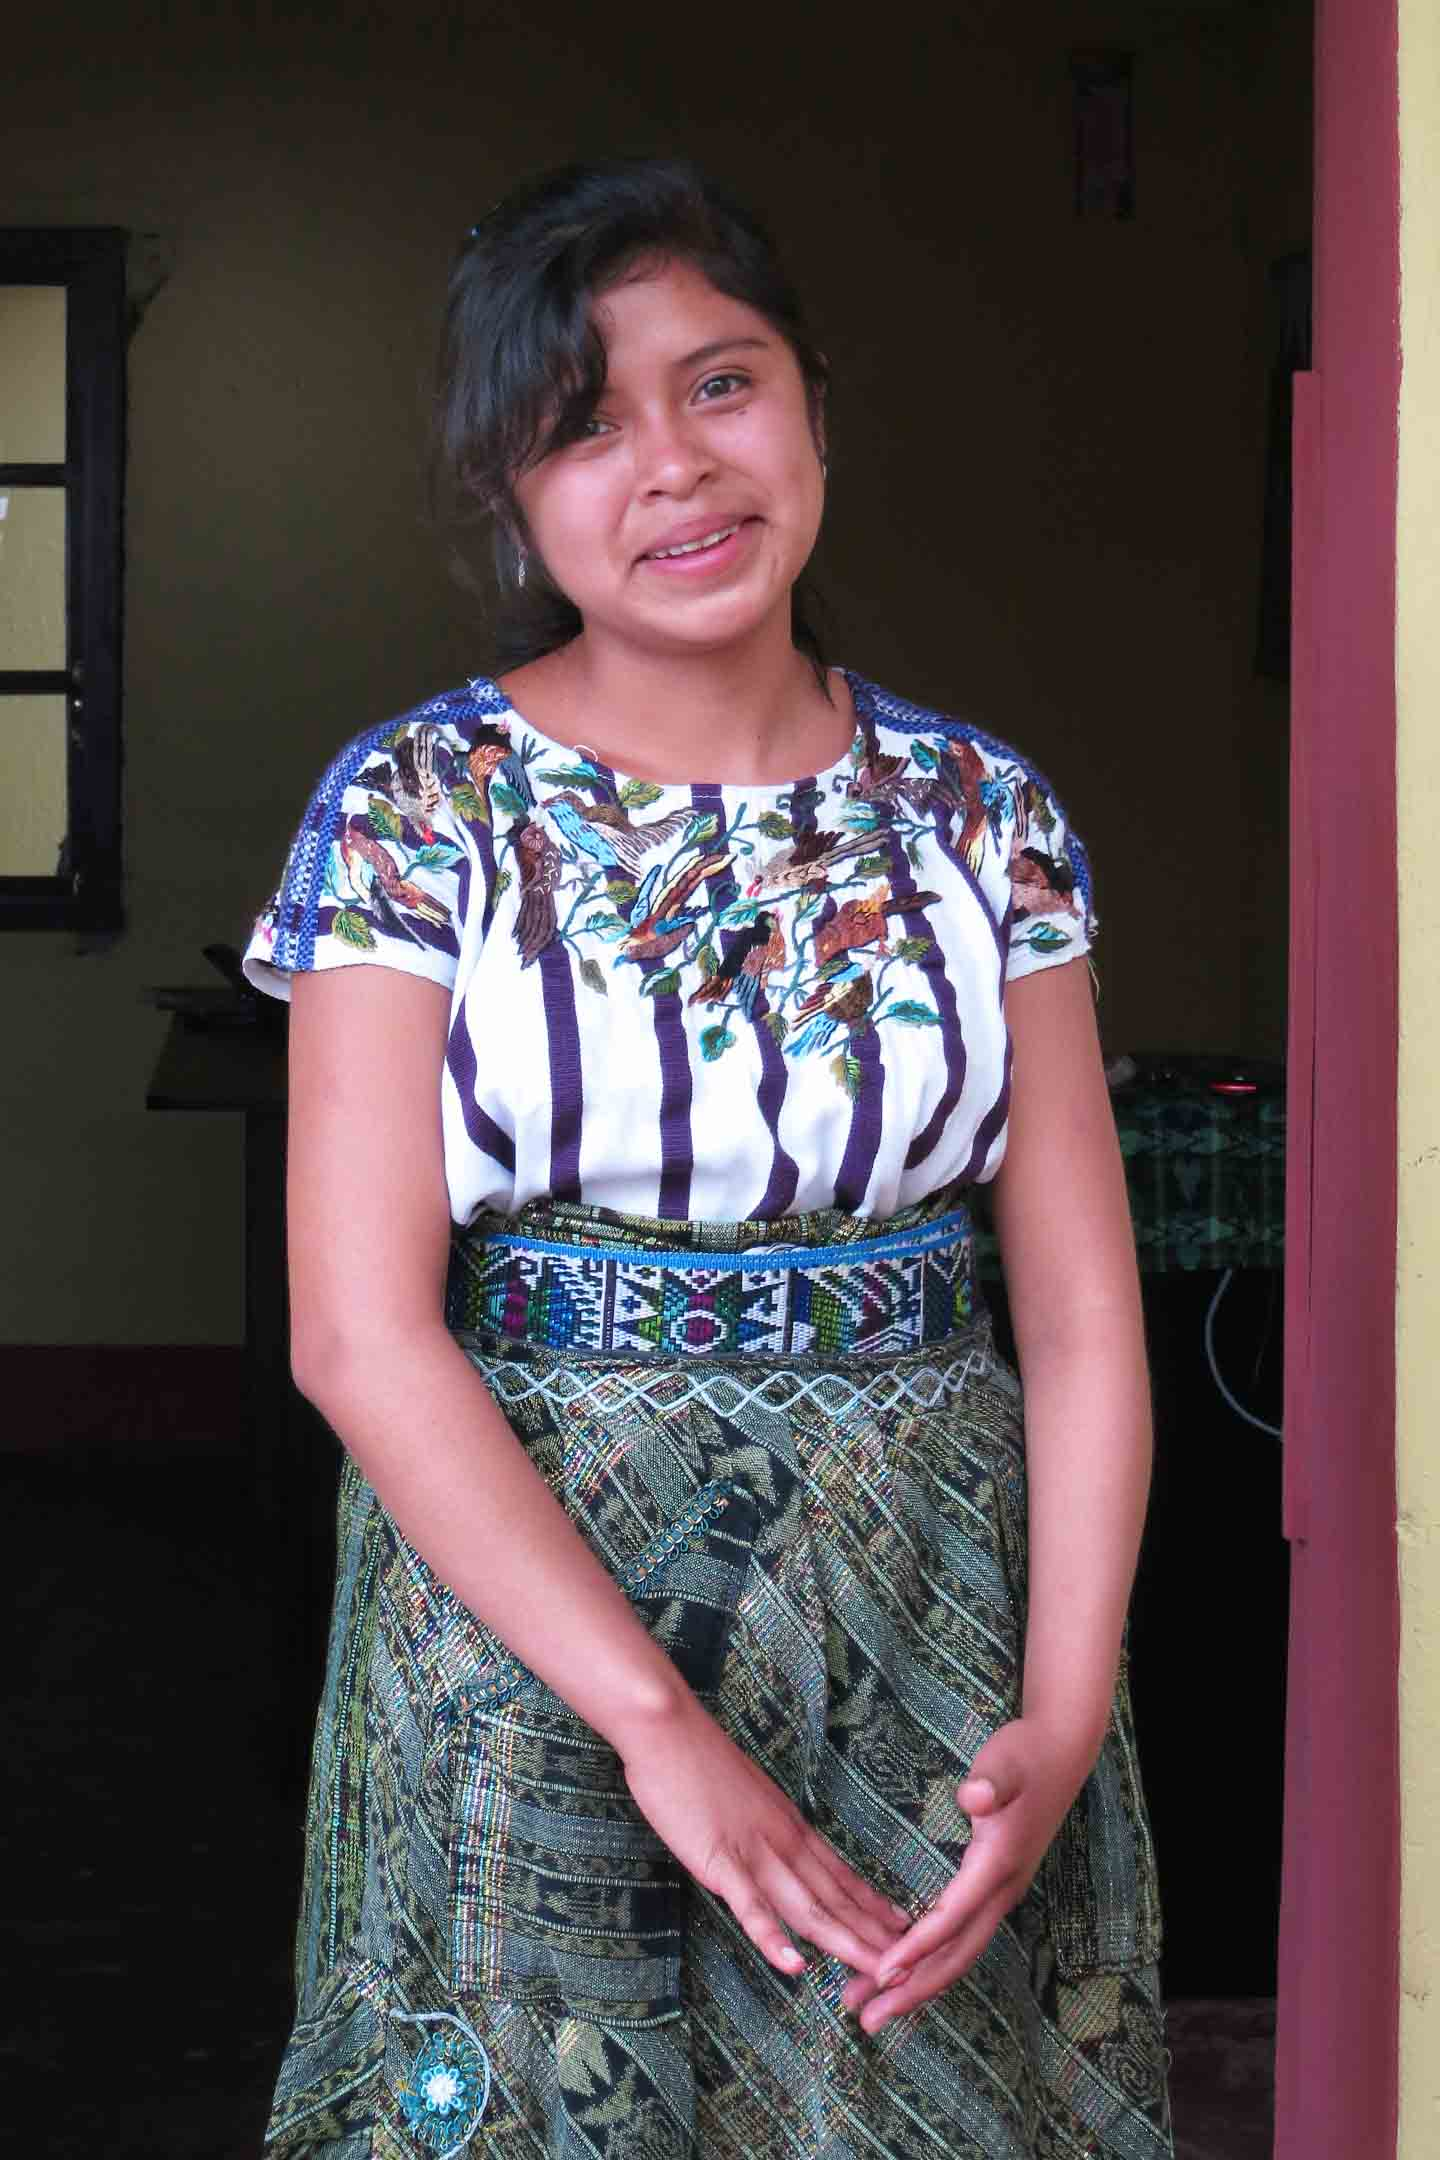 Lidia Micaela Ujpan is 16 and dreams of being a teacher